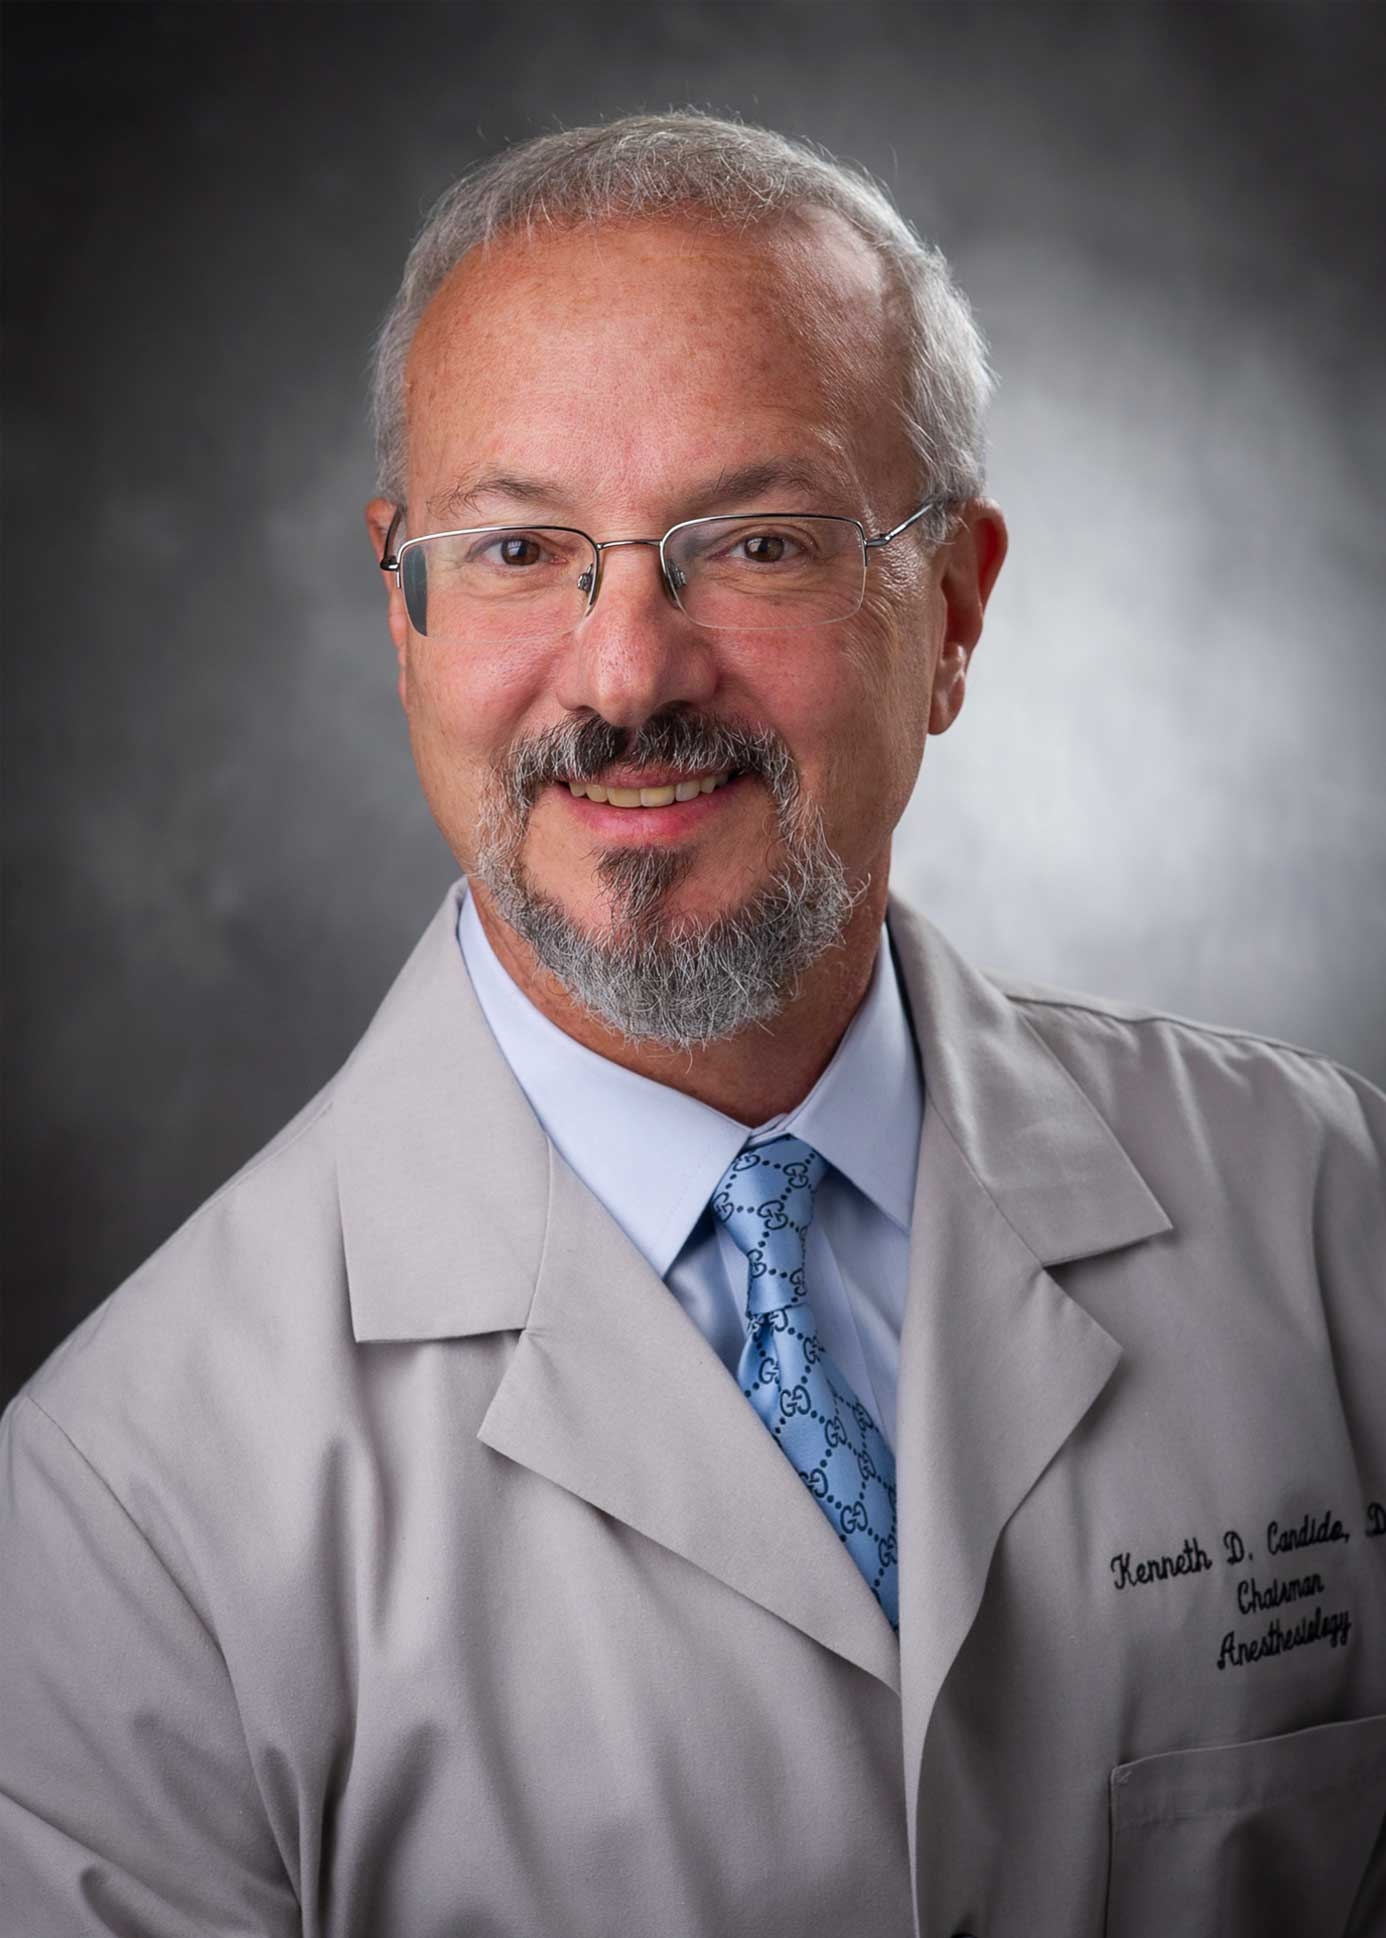 Kenneth Candido, M.D.